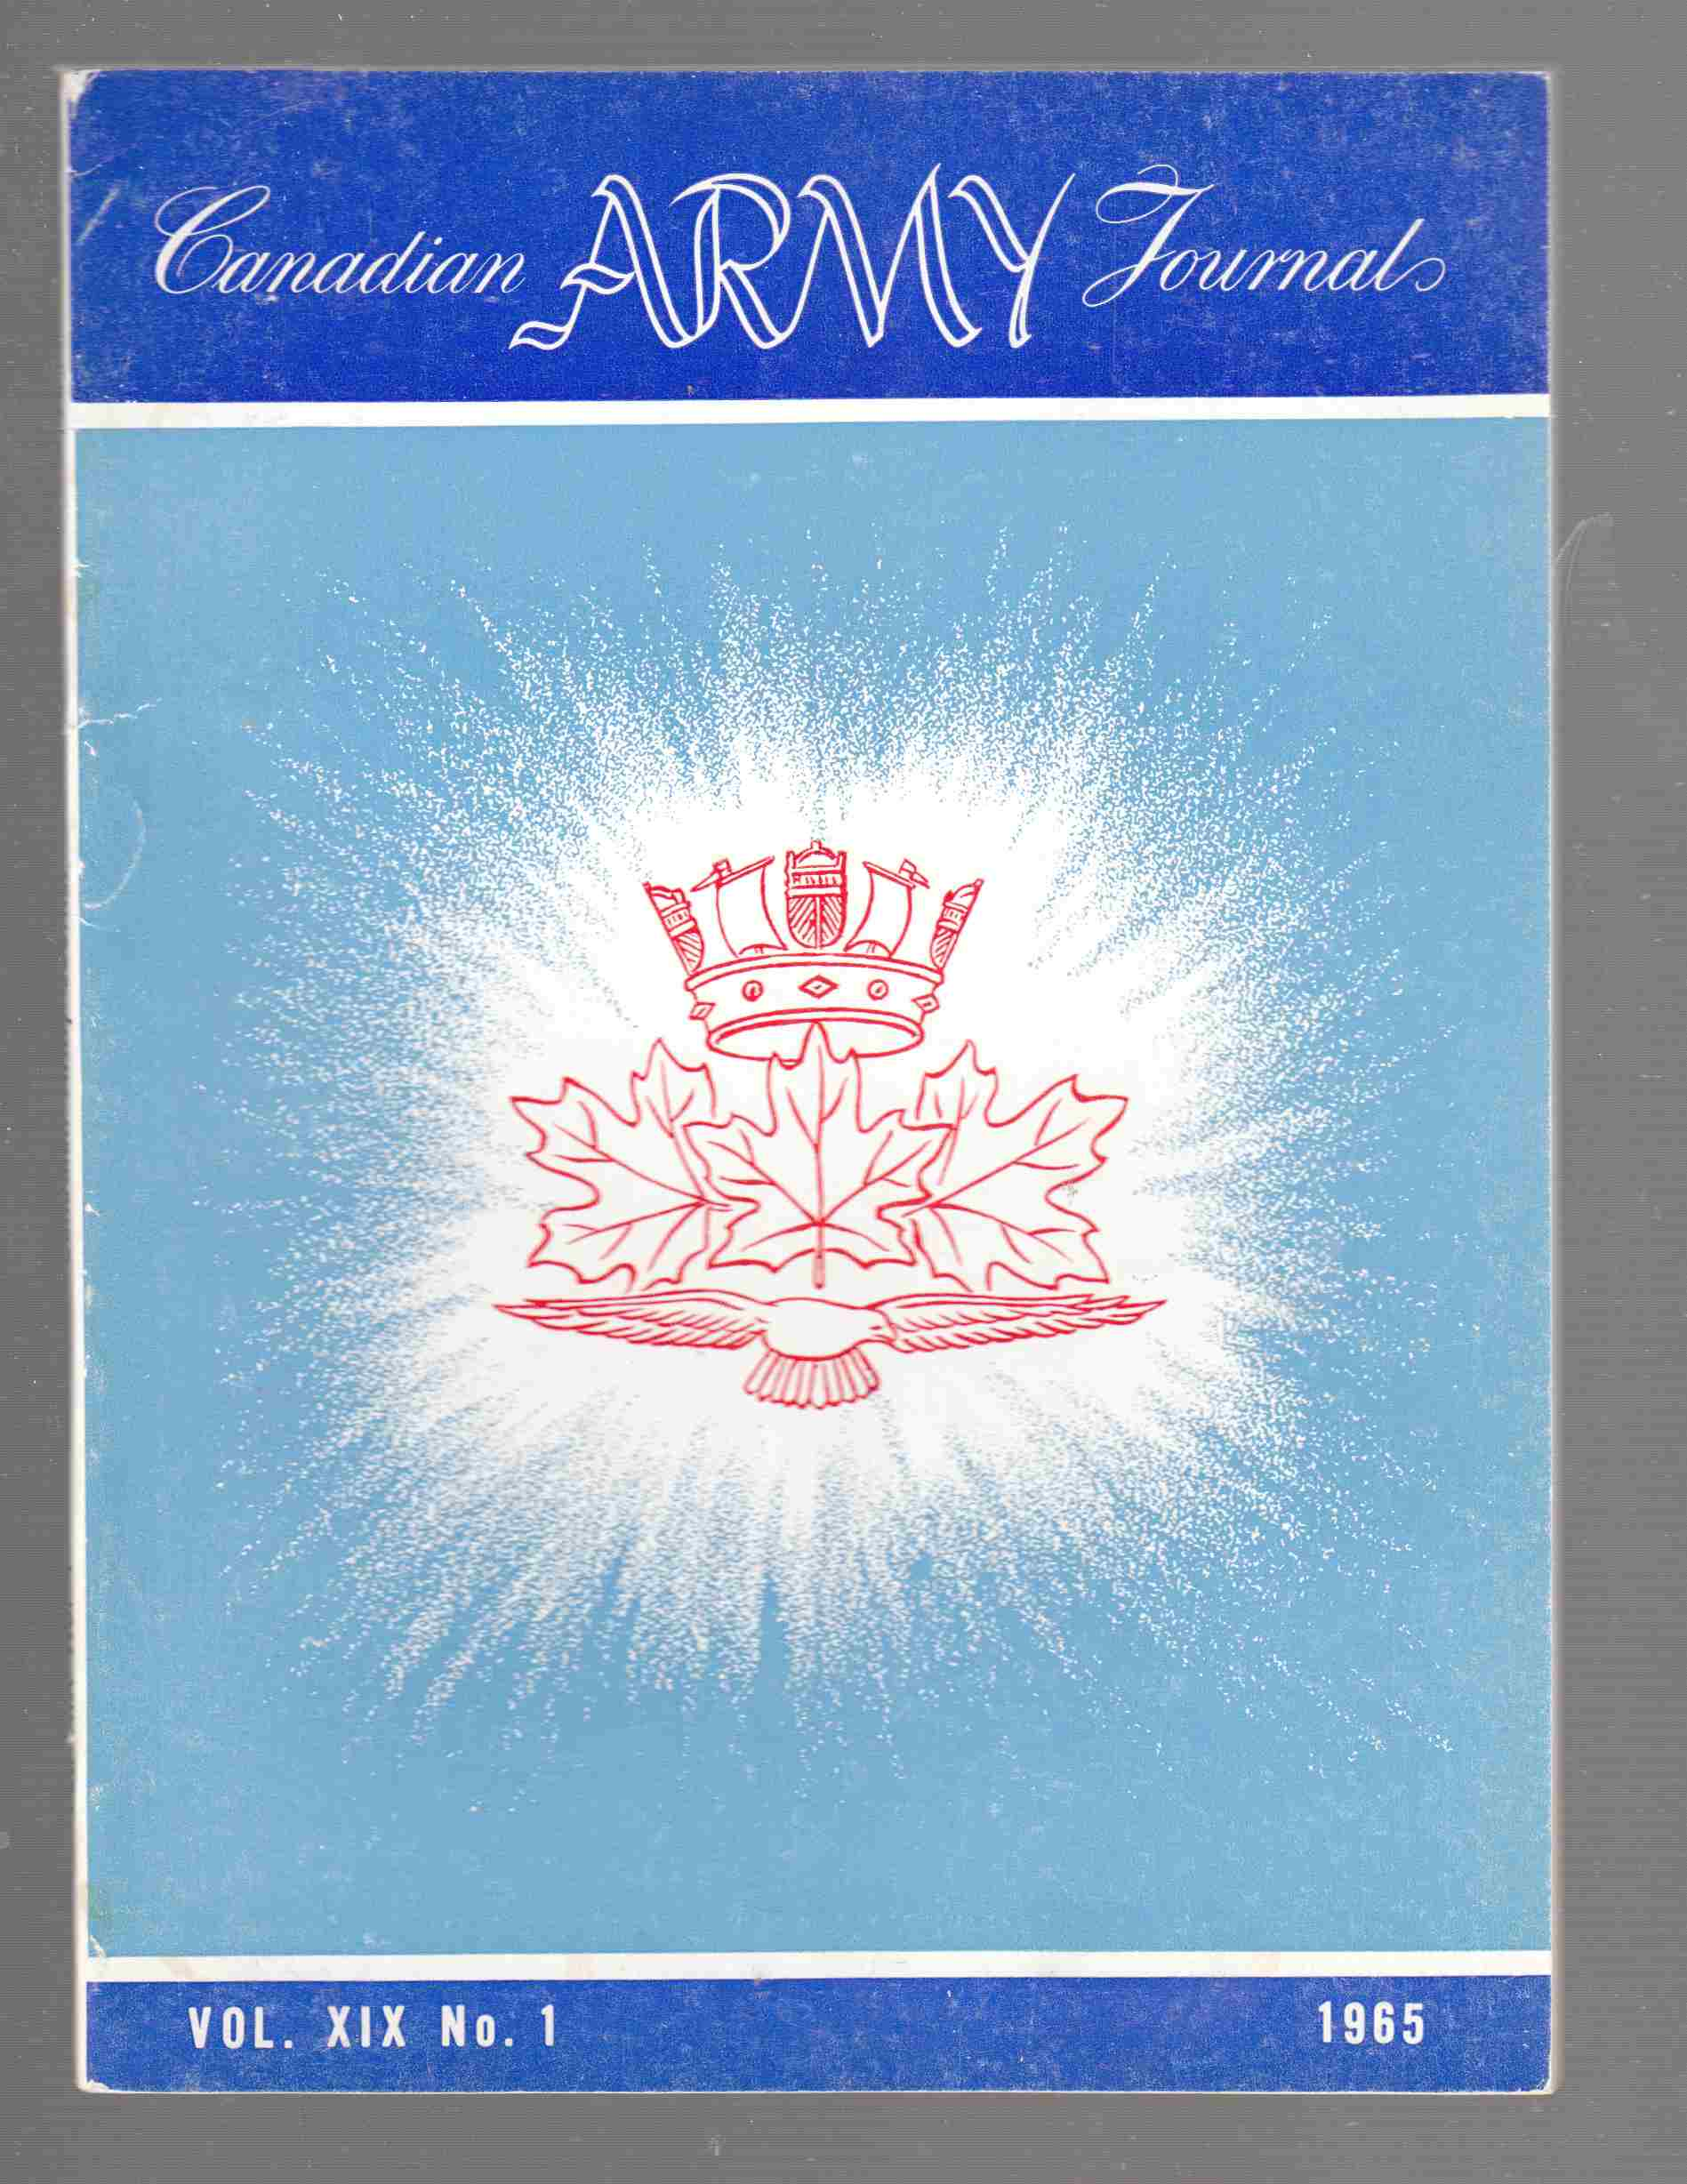 Image for The Canadian Army Journal Vol. XIX No. 1 1965